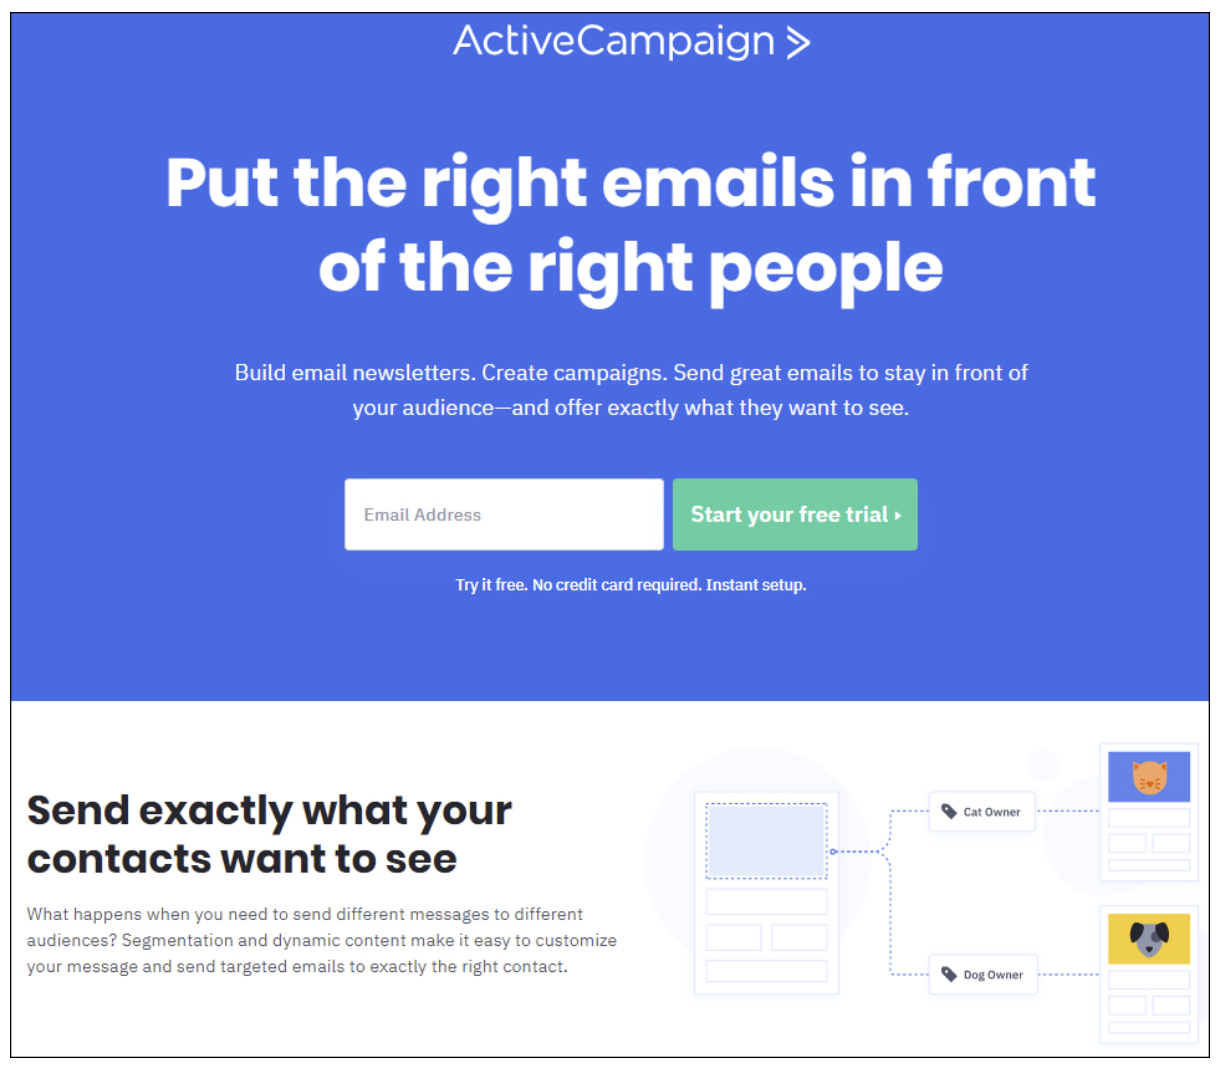 Landing page being used by the email service provider ActiveCampaign